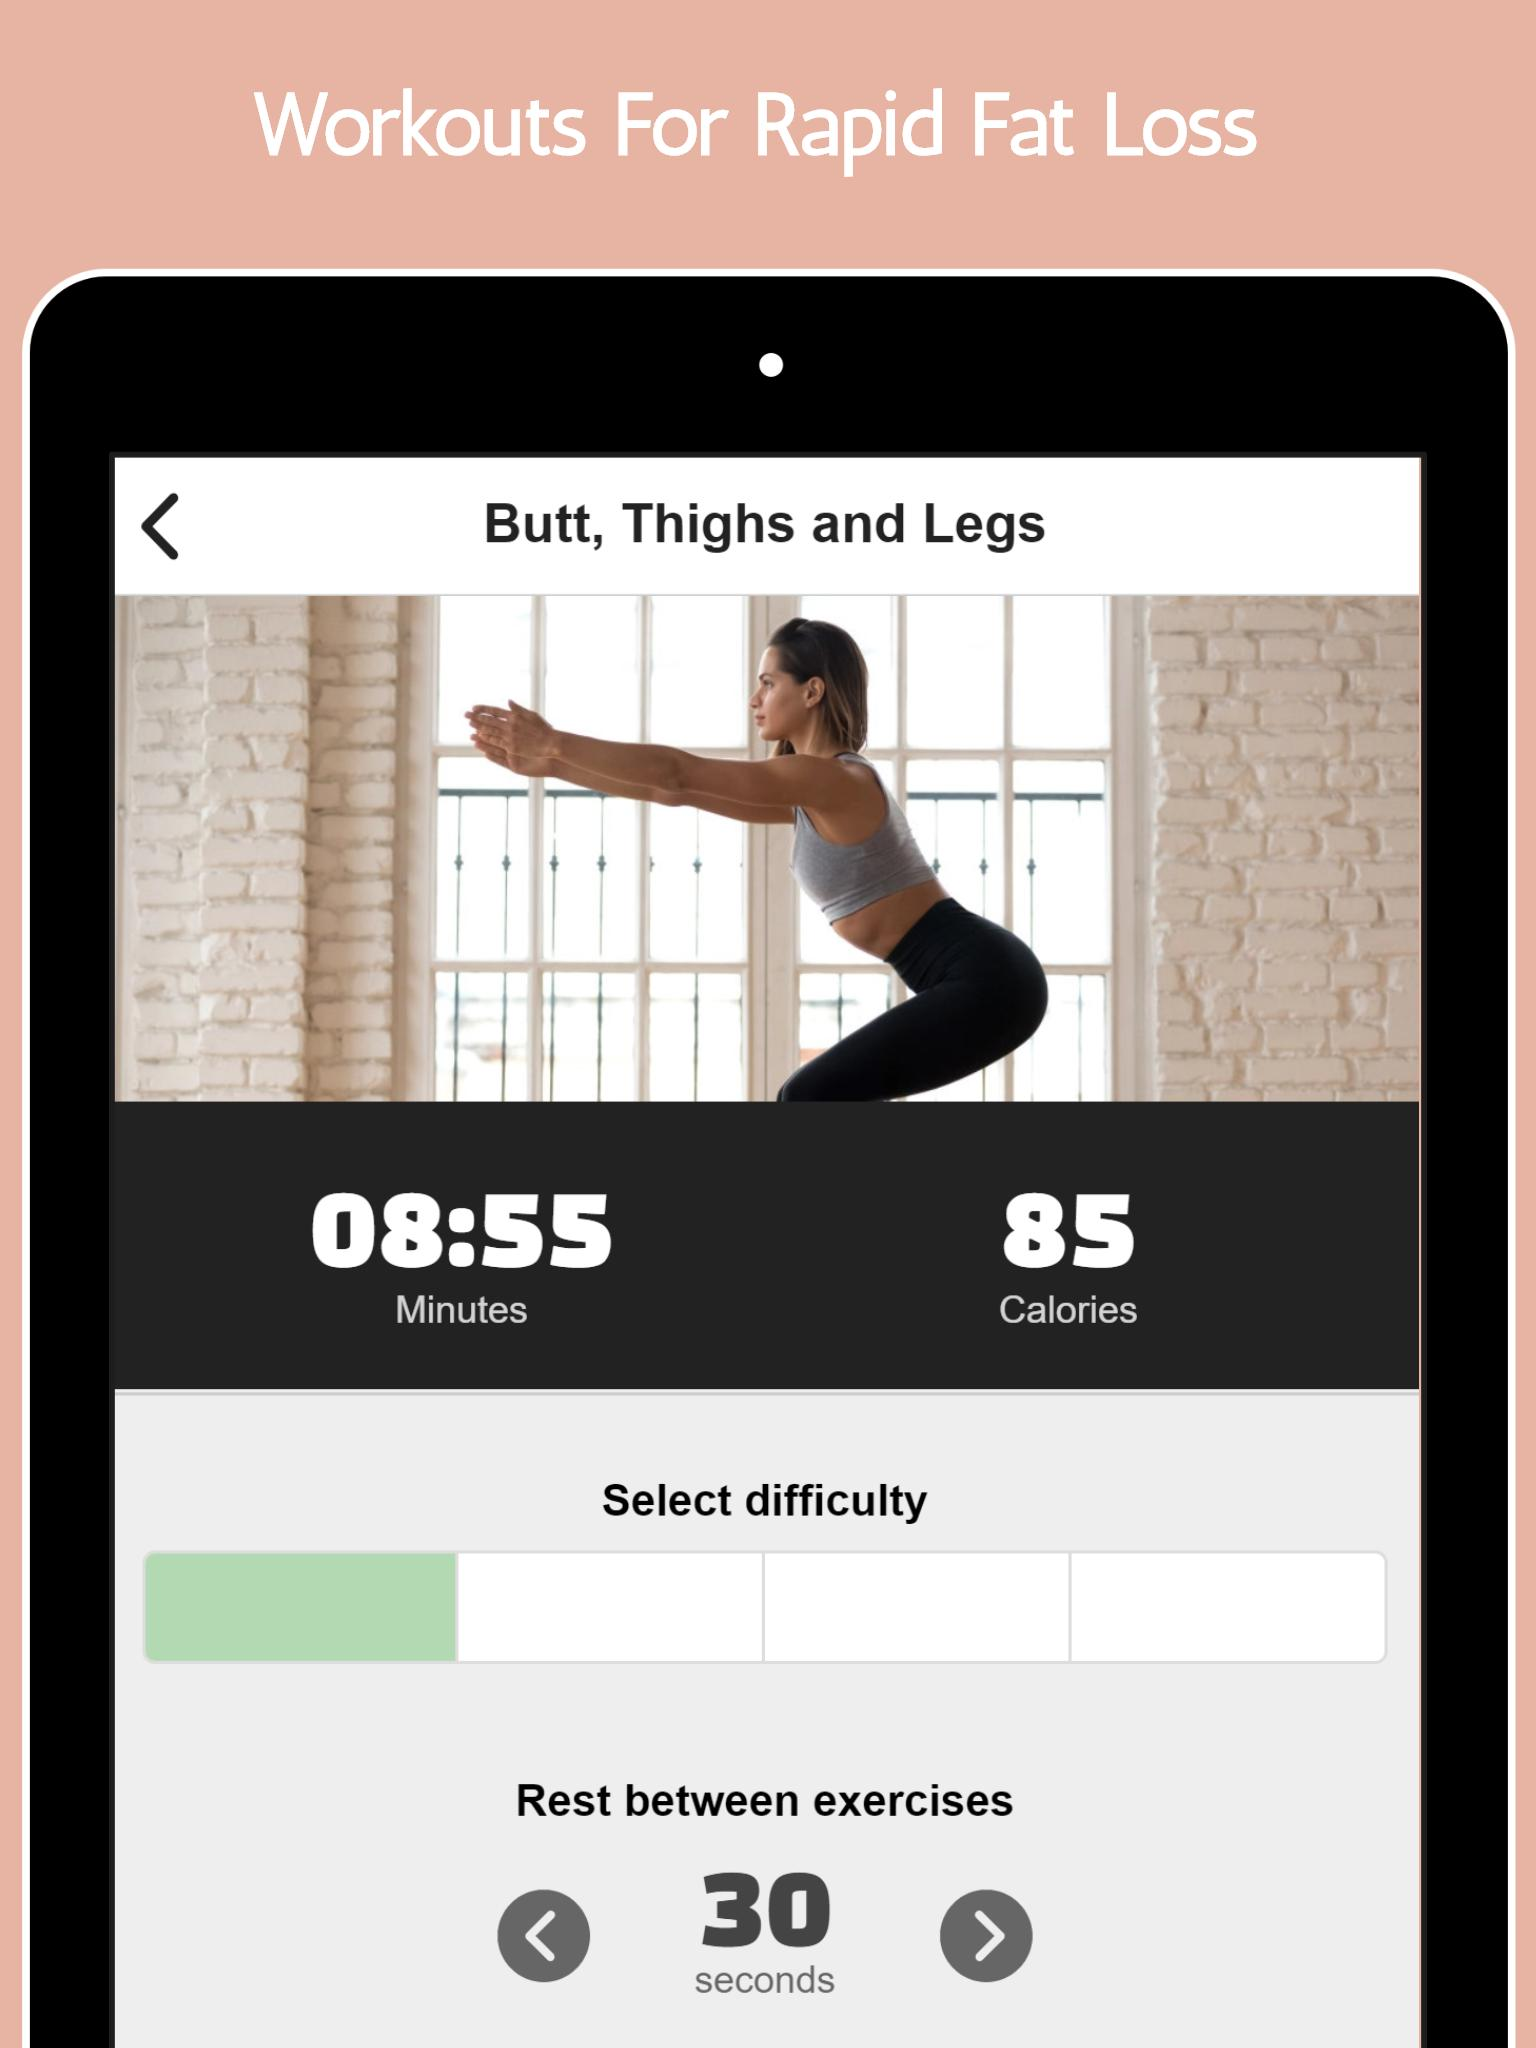 Descărcare Apk Fat Burning Workouts - Lose Weight Home Workout